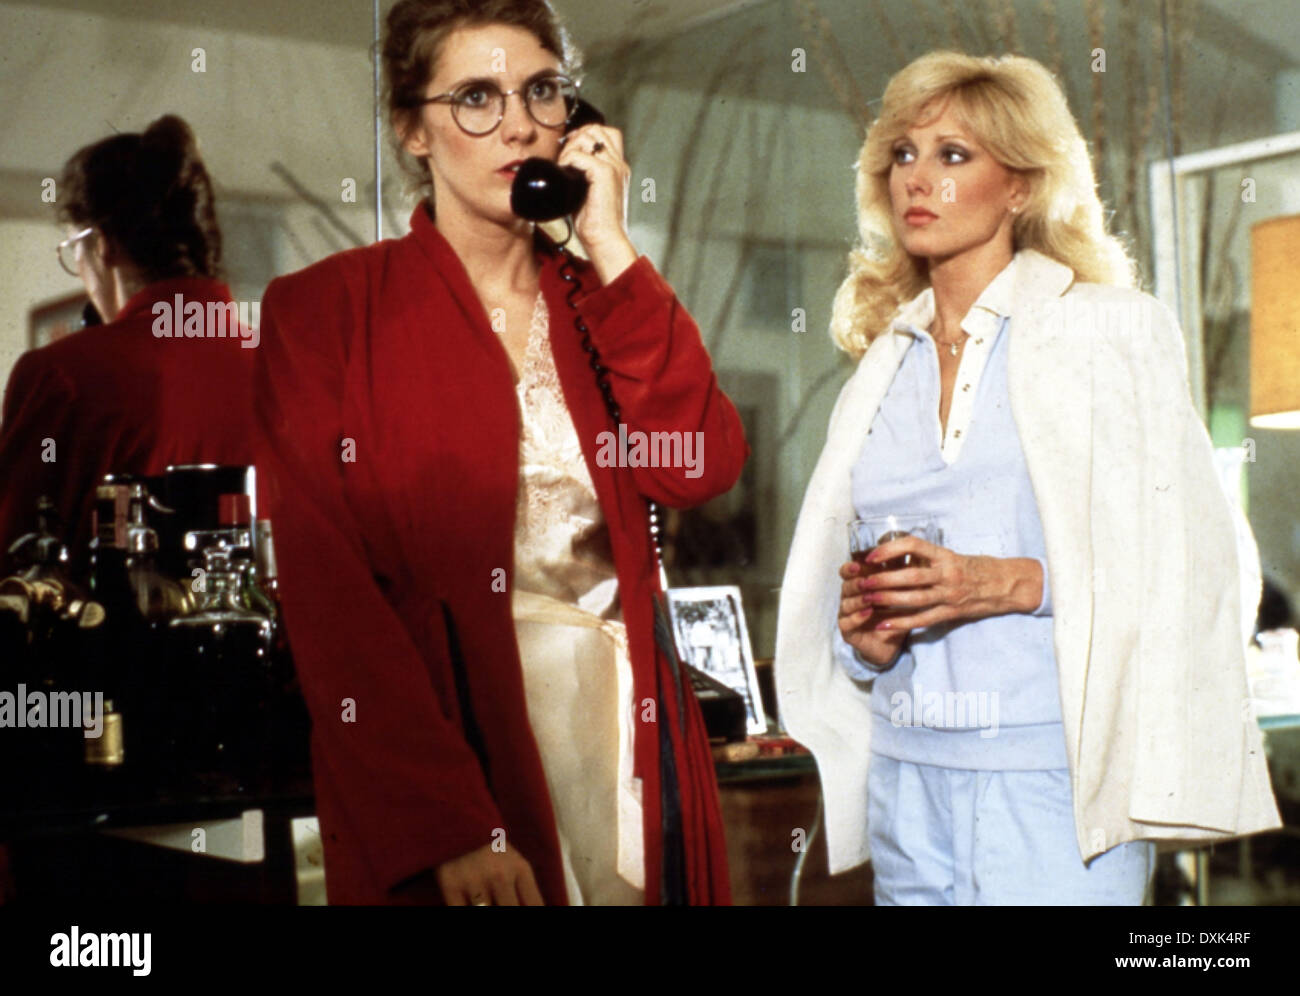 THE SEDUCTION (US1982) COLLEEN CAMP, MORGAN FAIRCHILD - Stock Image